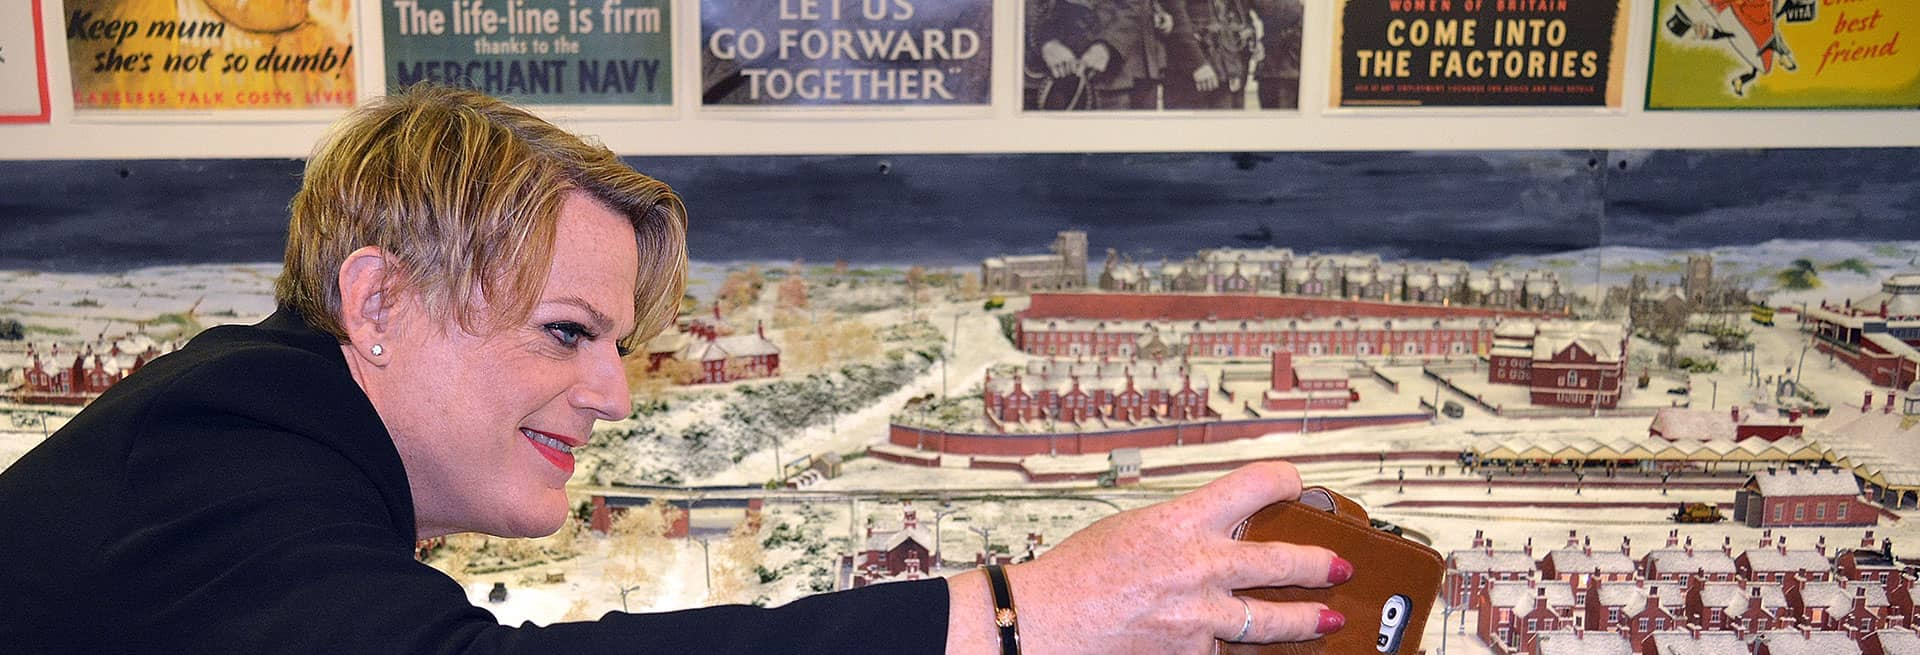 Eddie Izzard taking a selfie at the WWII gallery in Bexhill Museum